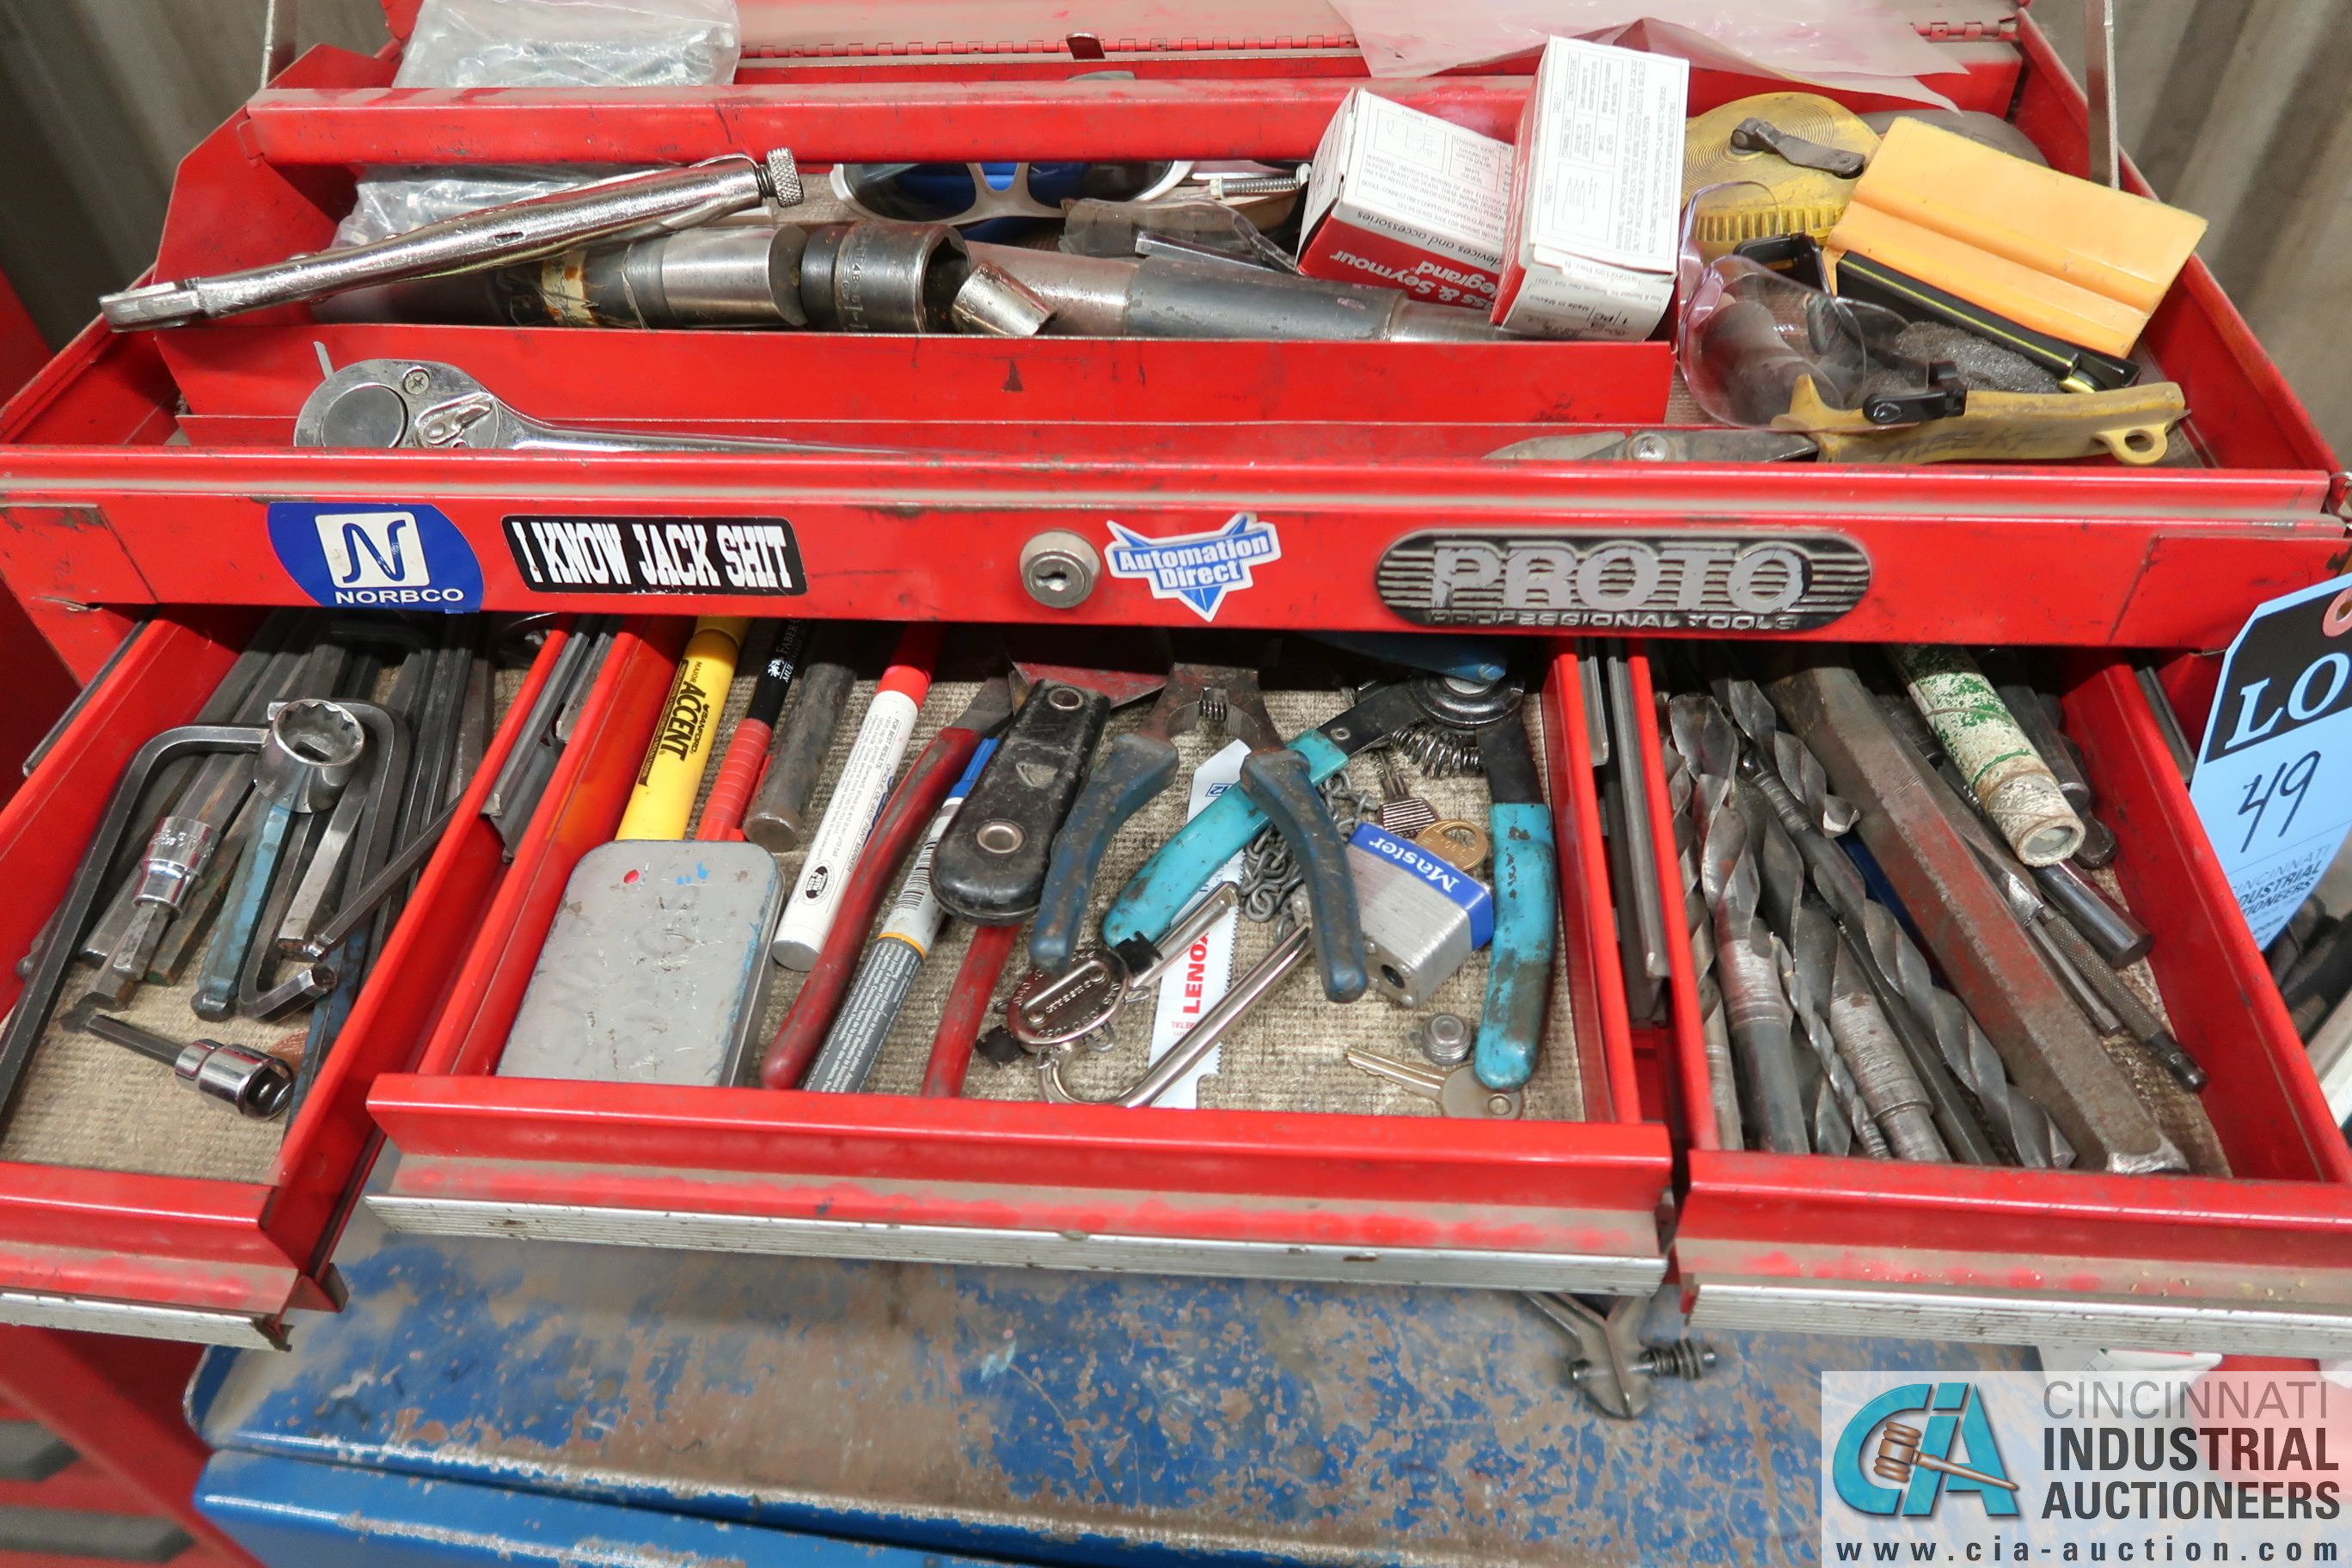 (LOT) 6-DRAWER TOOL BOX WITH PORTABLE 2-DOOR CABINET AND TOOLS - Image 3 of 7